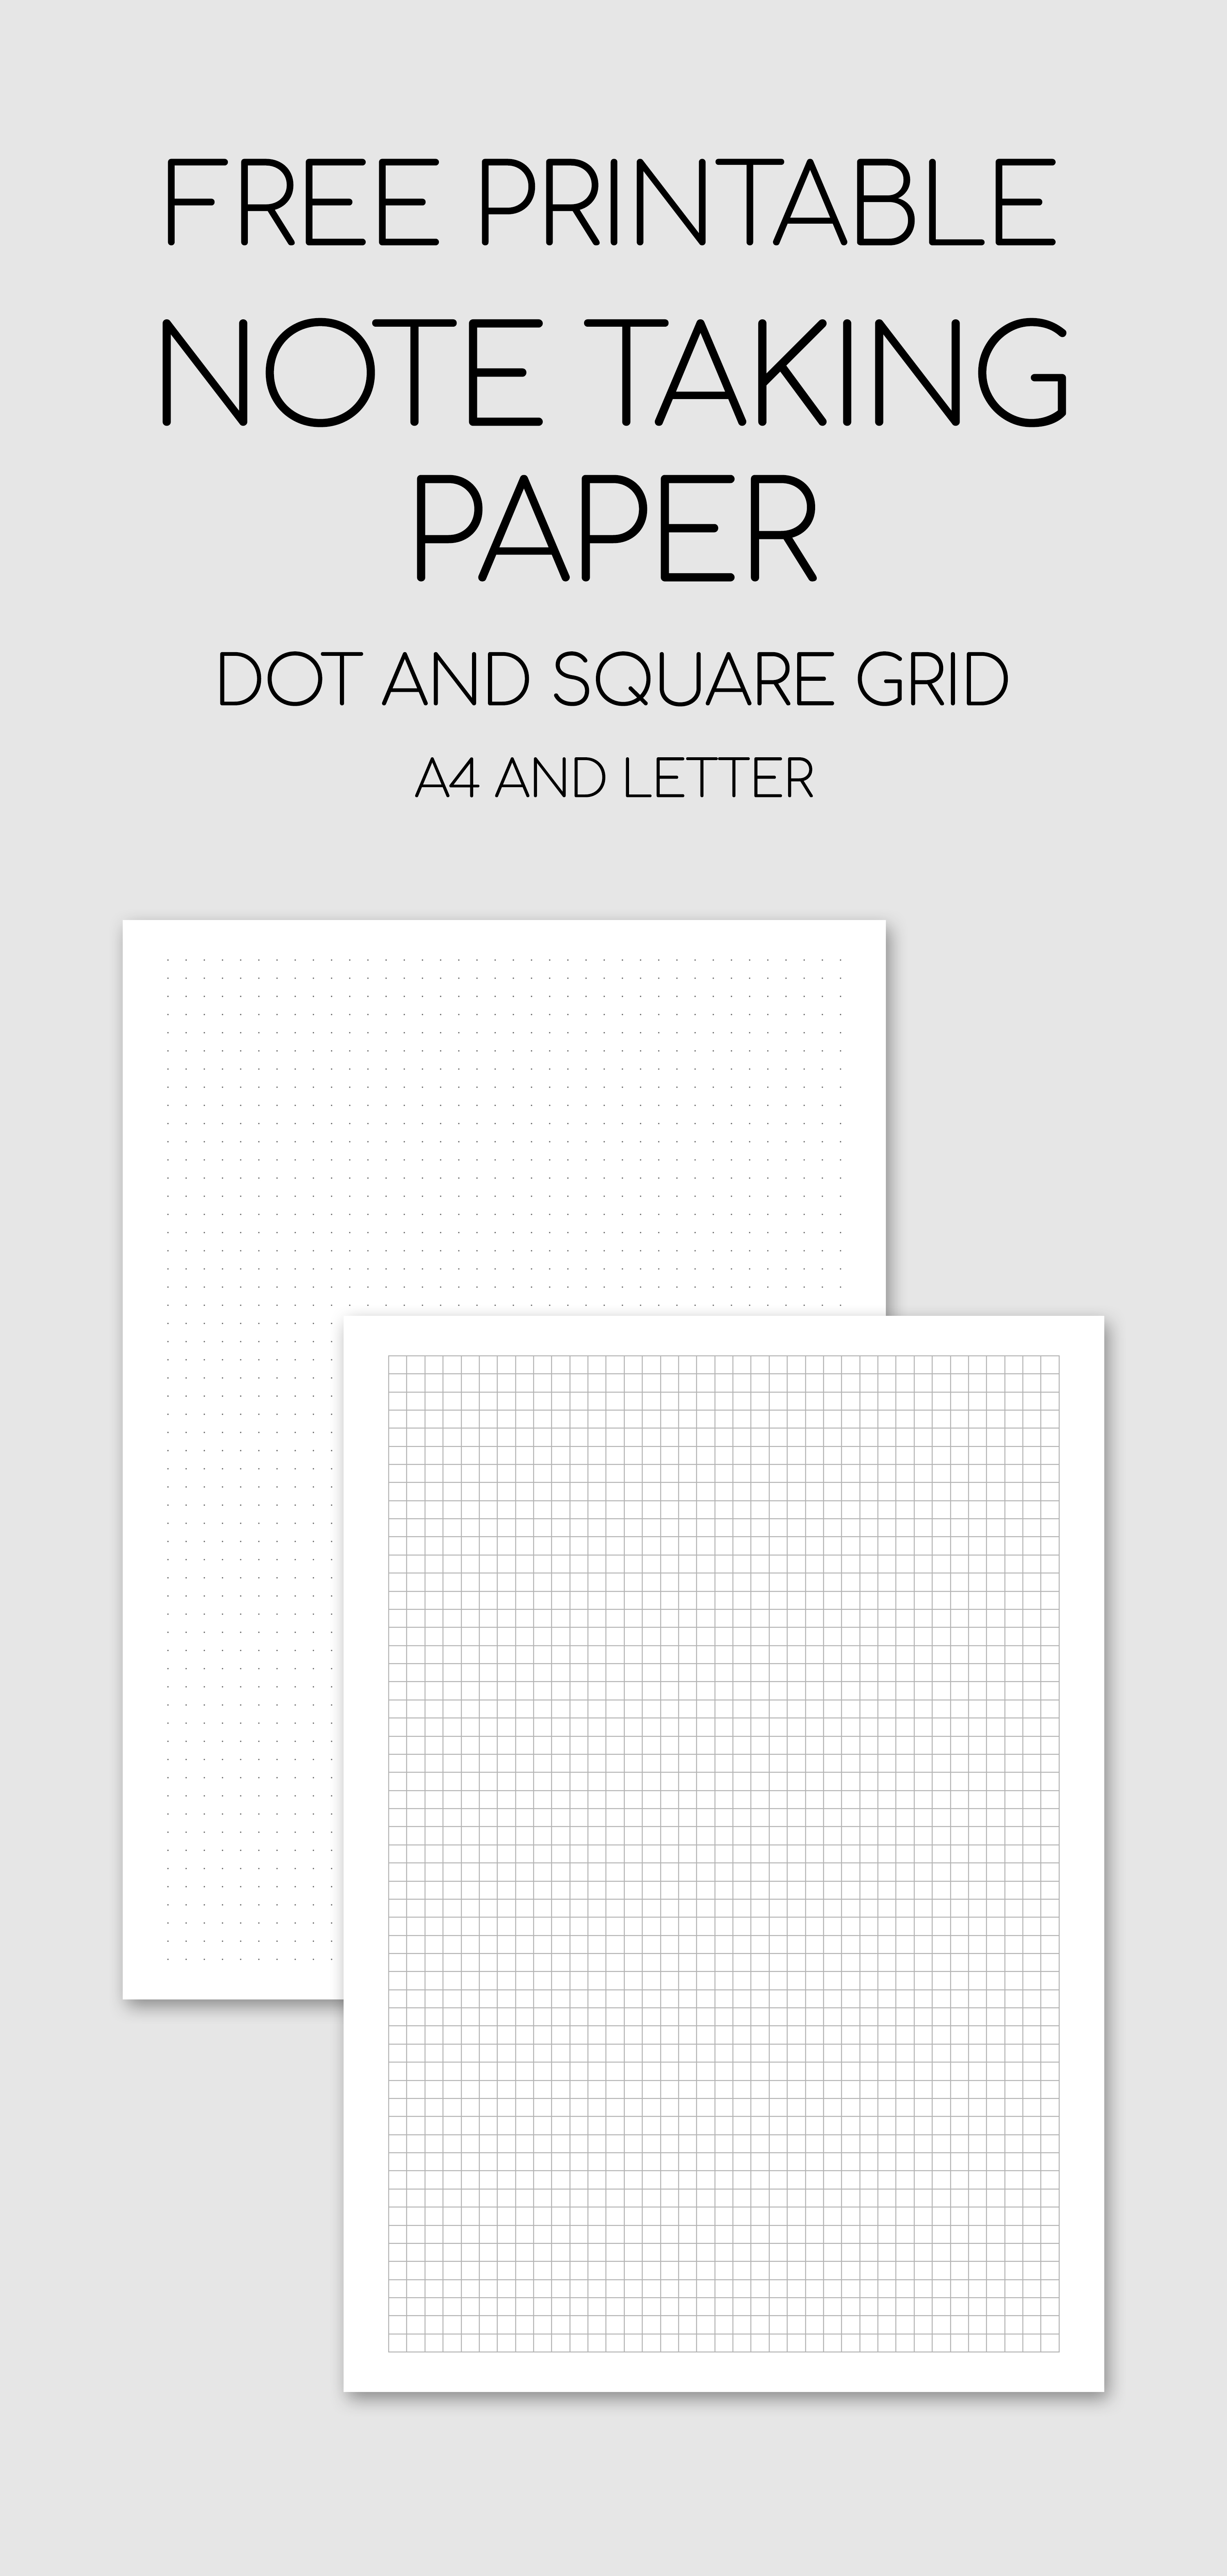 Free Printable Note Taking Paper - Dot And Square Grid #free - Free Printable Square Dot Paper